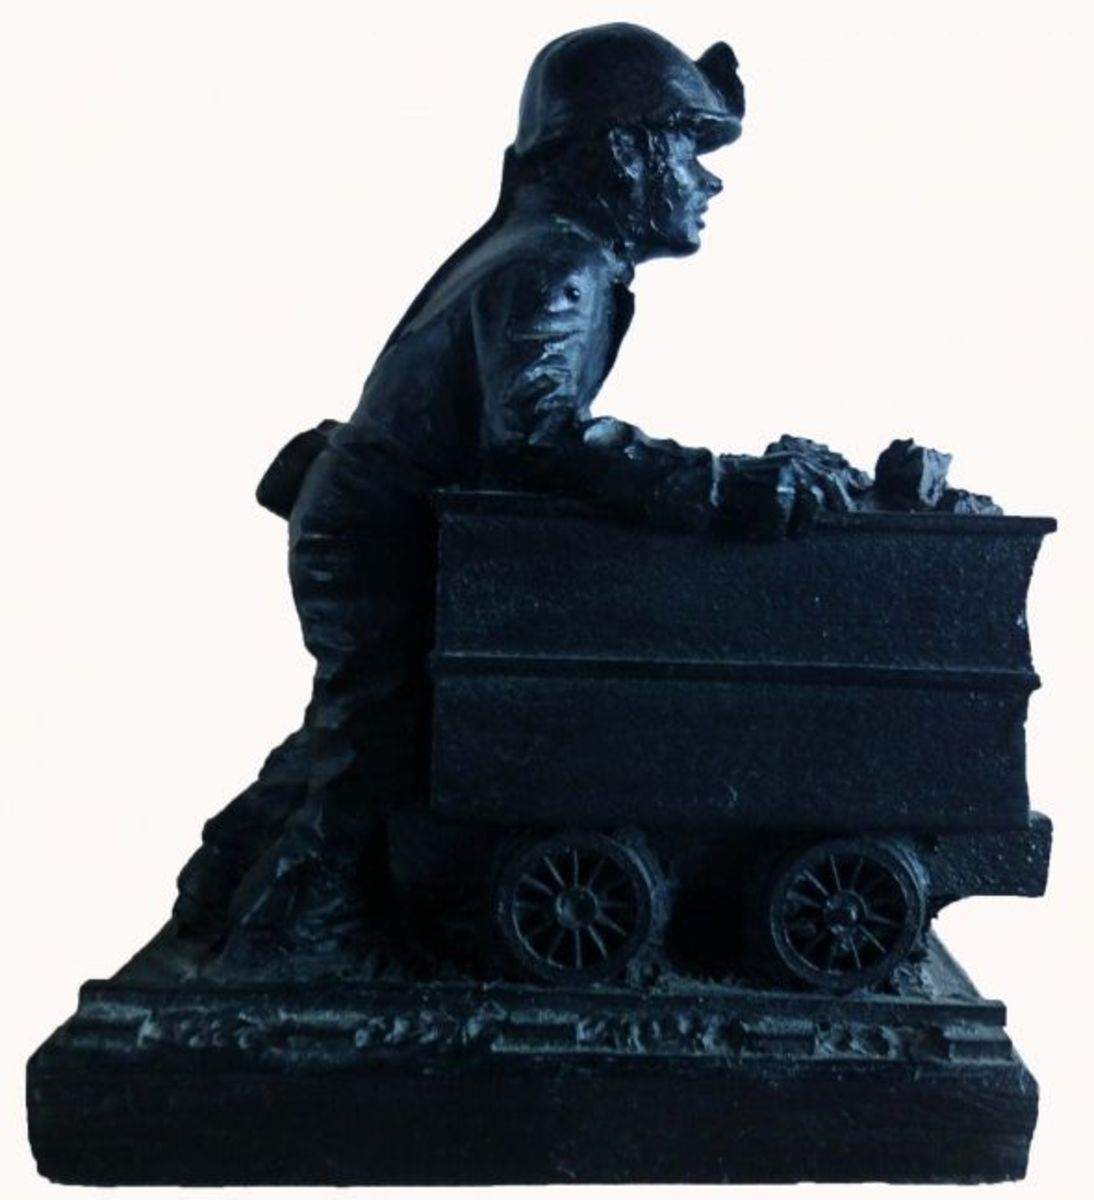 This is a Welsh coal miner figurine that was hand-made from coal.